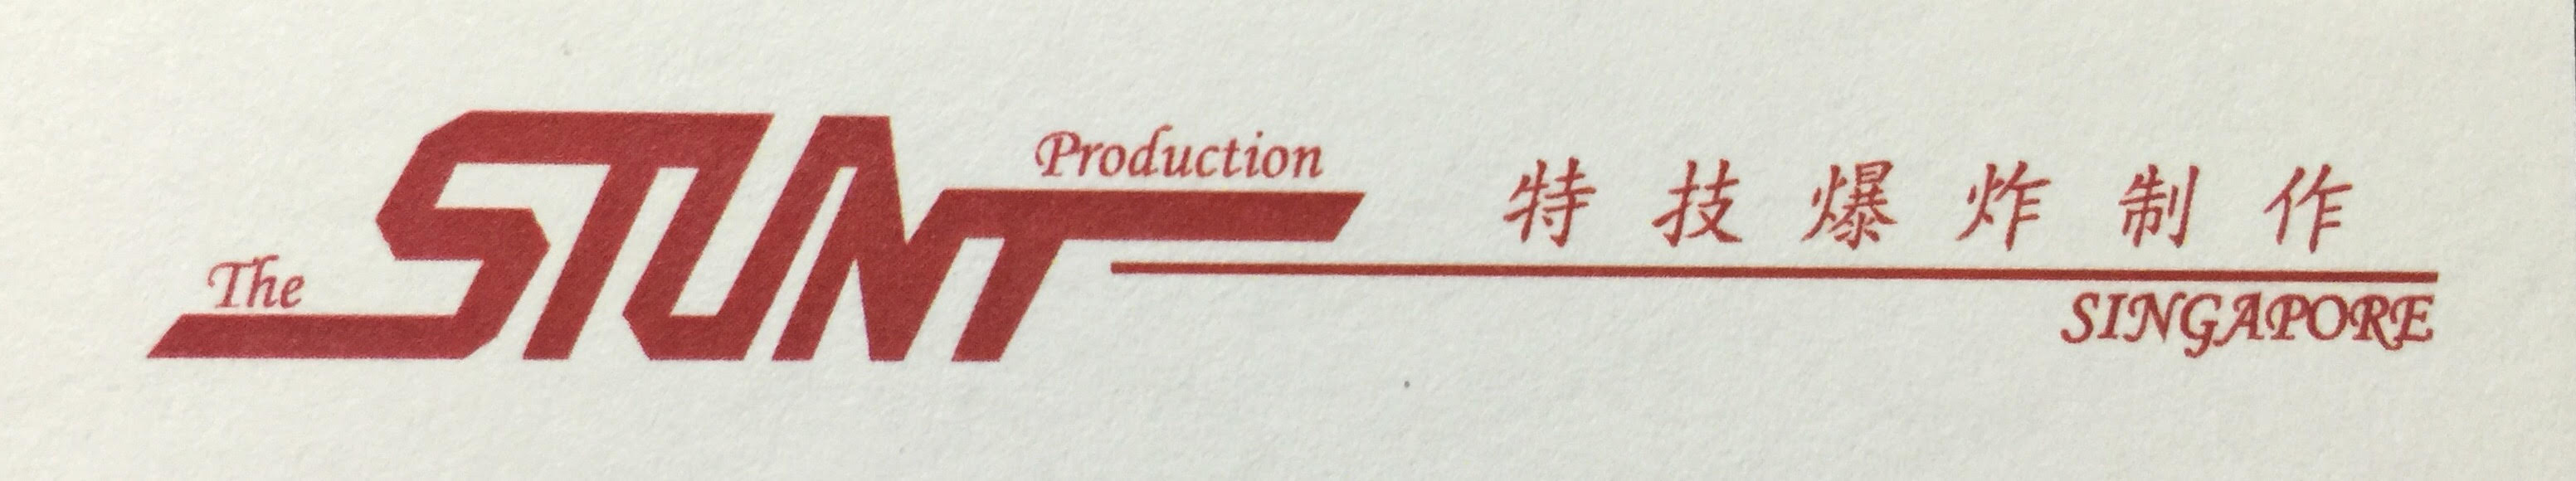 The Stunt Production (S)